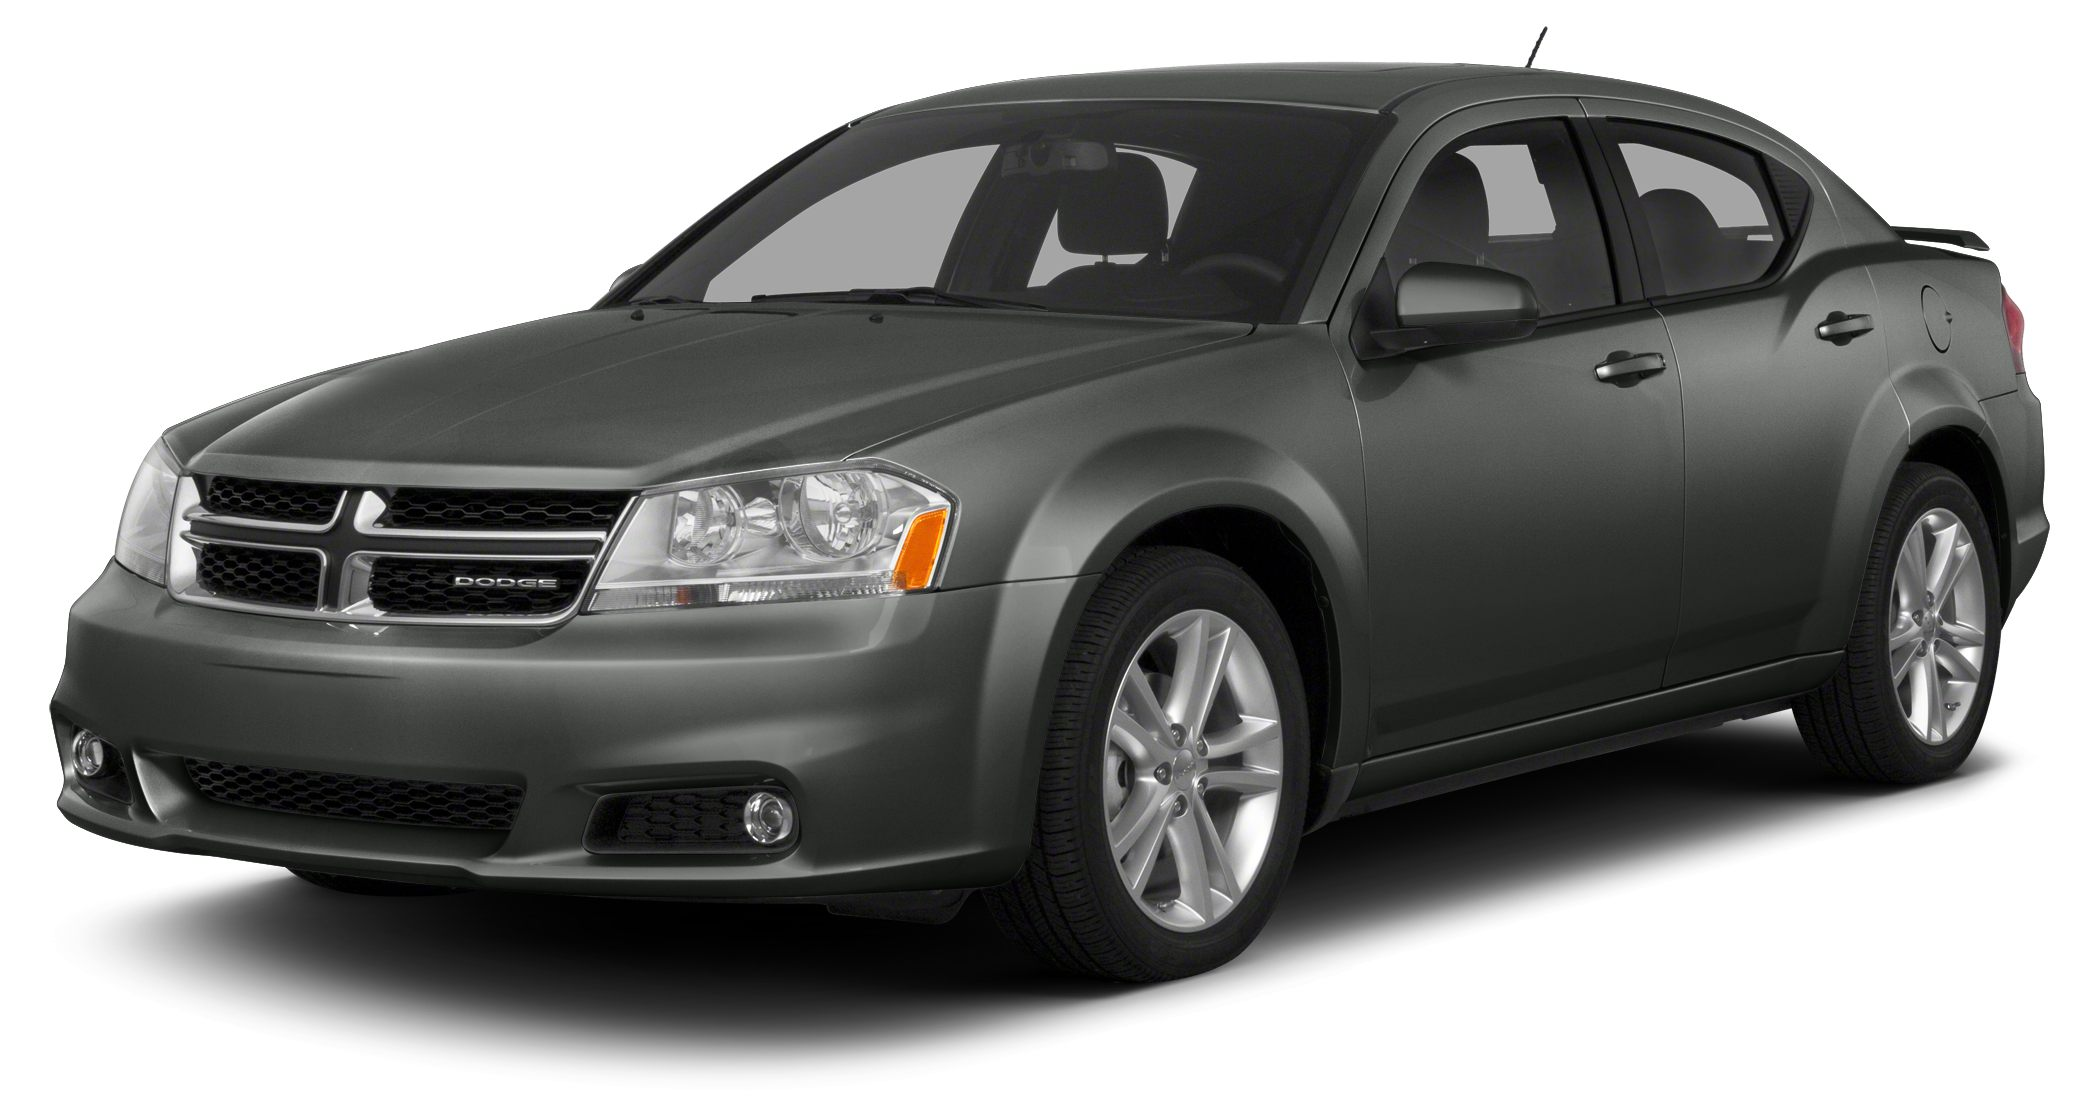 2013 Dodge Avenger SXT WE OFFER FREE LIFETIME INSPECTION Miles 35133Color Gray Stock P1576 V